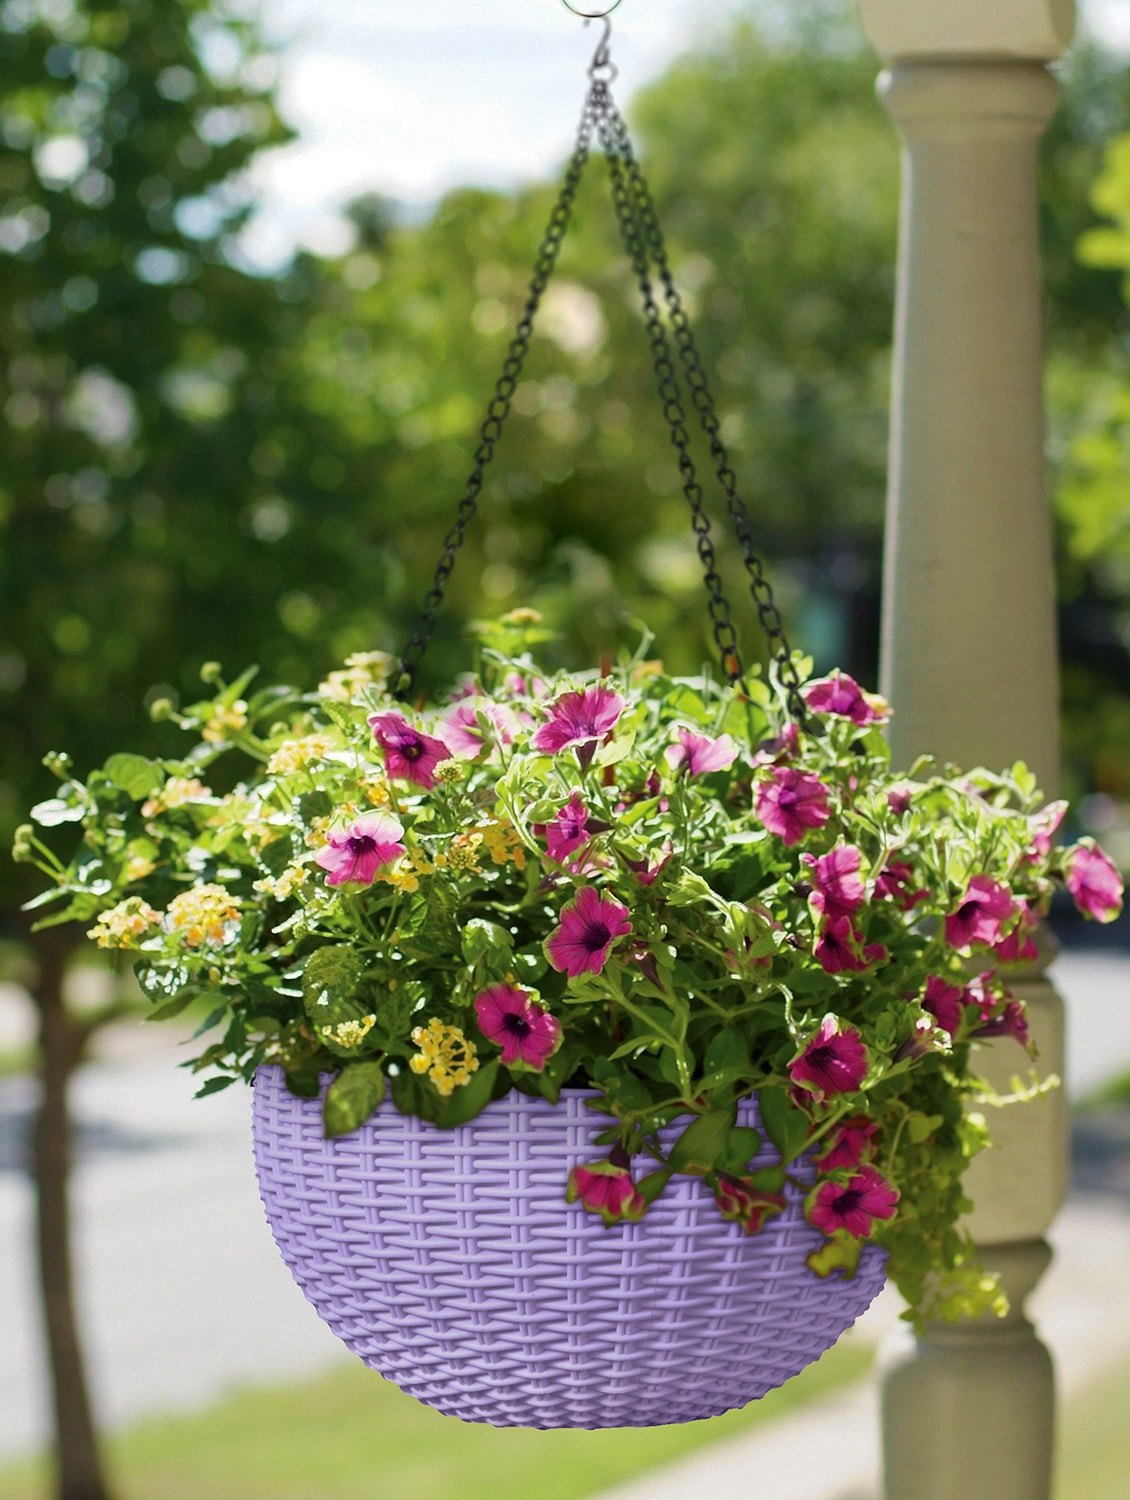 Buy Round Rattan Woven Plastic Flower Pot Garden Plant Chain Hanging Pot With 1 Pc Chain for Unisex from Story@home for \u20b9414 at 54% off | 2019 Limeroad.com & Buy Round Rattan Woven Plastic Flower Pot Garden Plant Chain Hanging ...